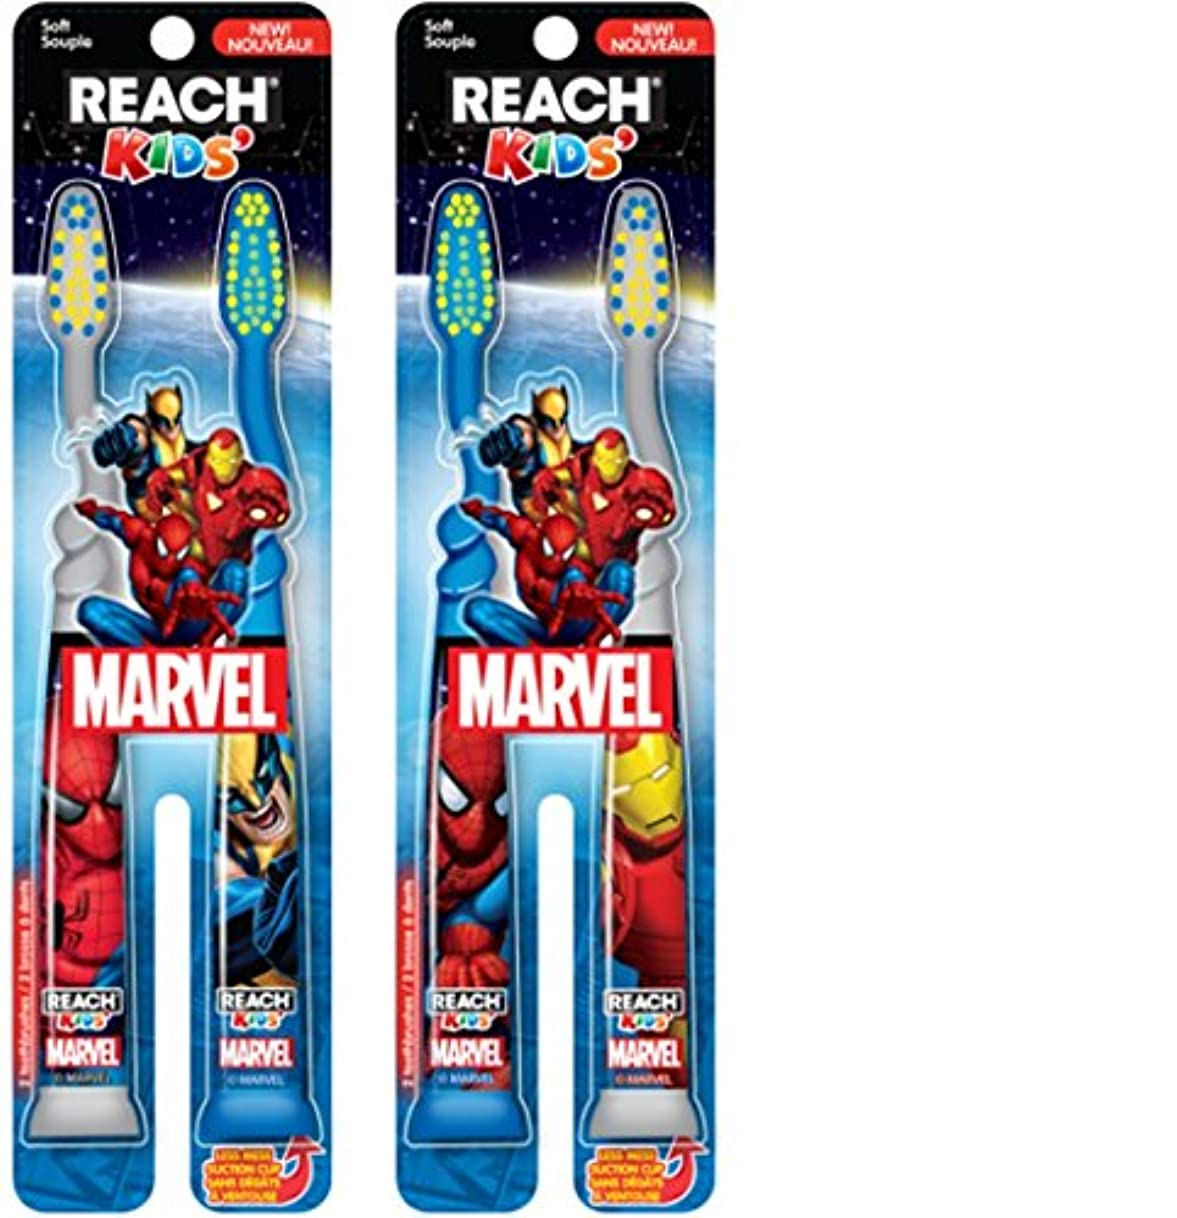 デイジー姿を消す義務づけるReach Kids Mavel Soft Toothbrush, 2 Count by Reach